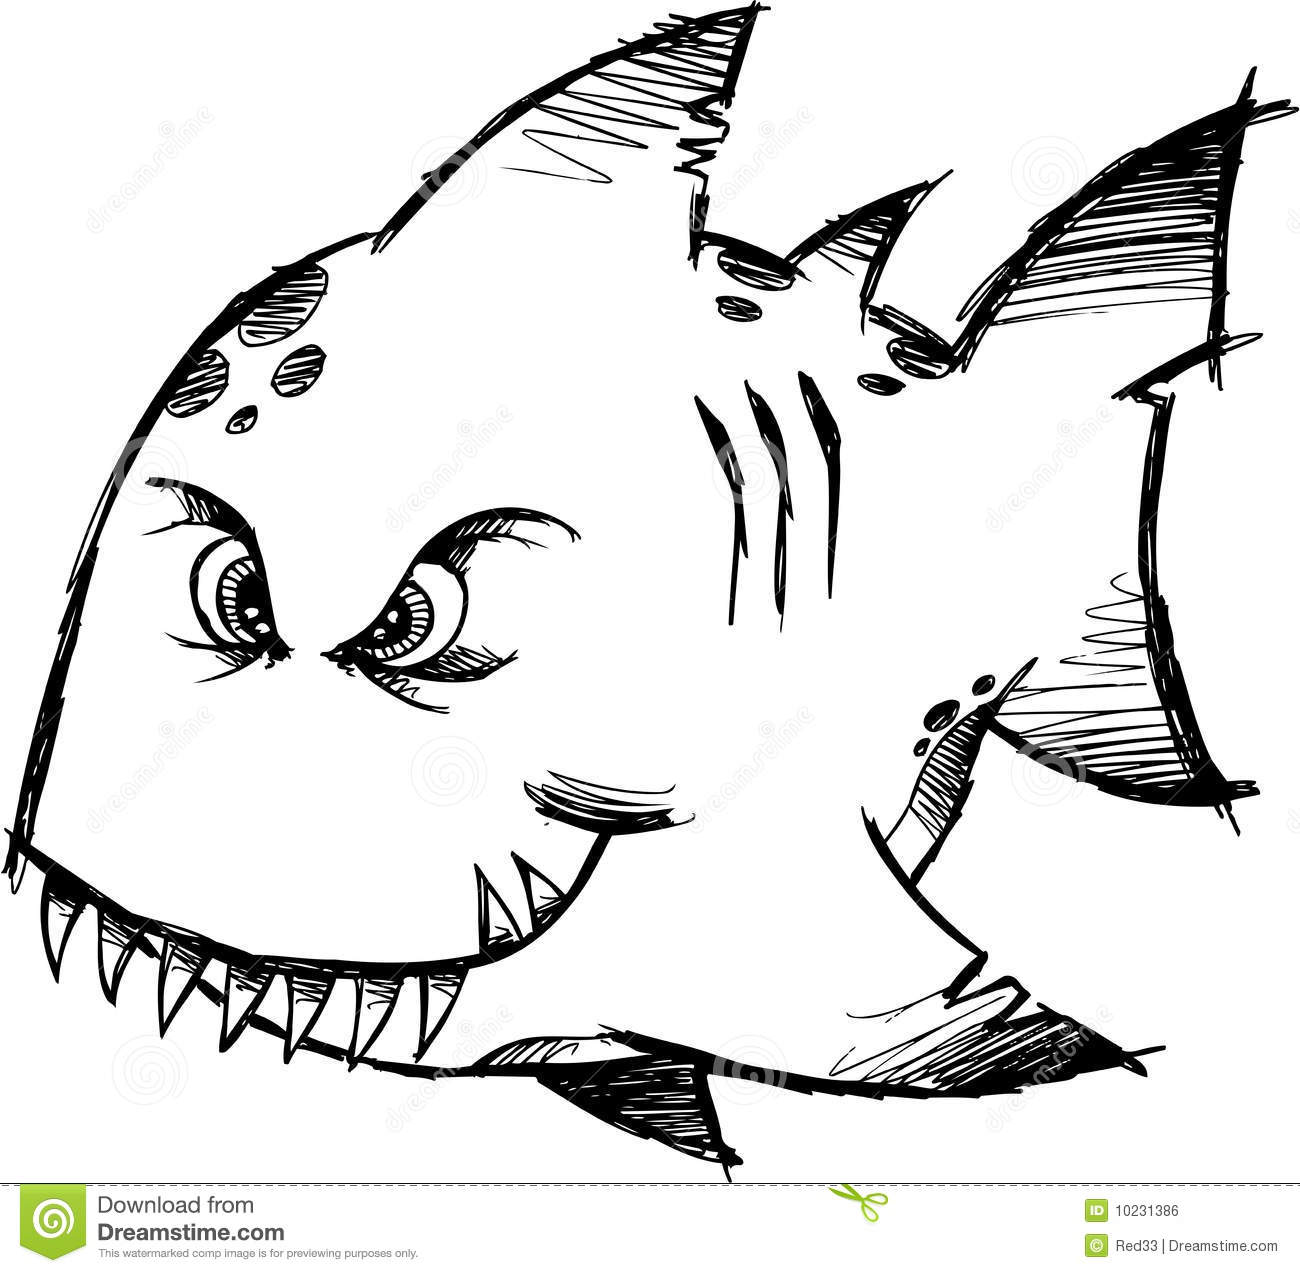 Sketchy mean fish vector royalty free stock image image for What does it mean to dream about fish